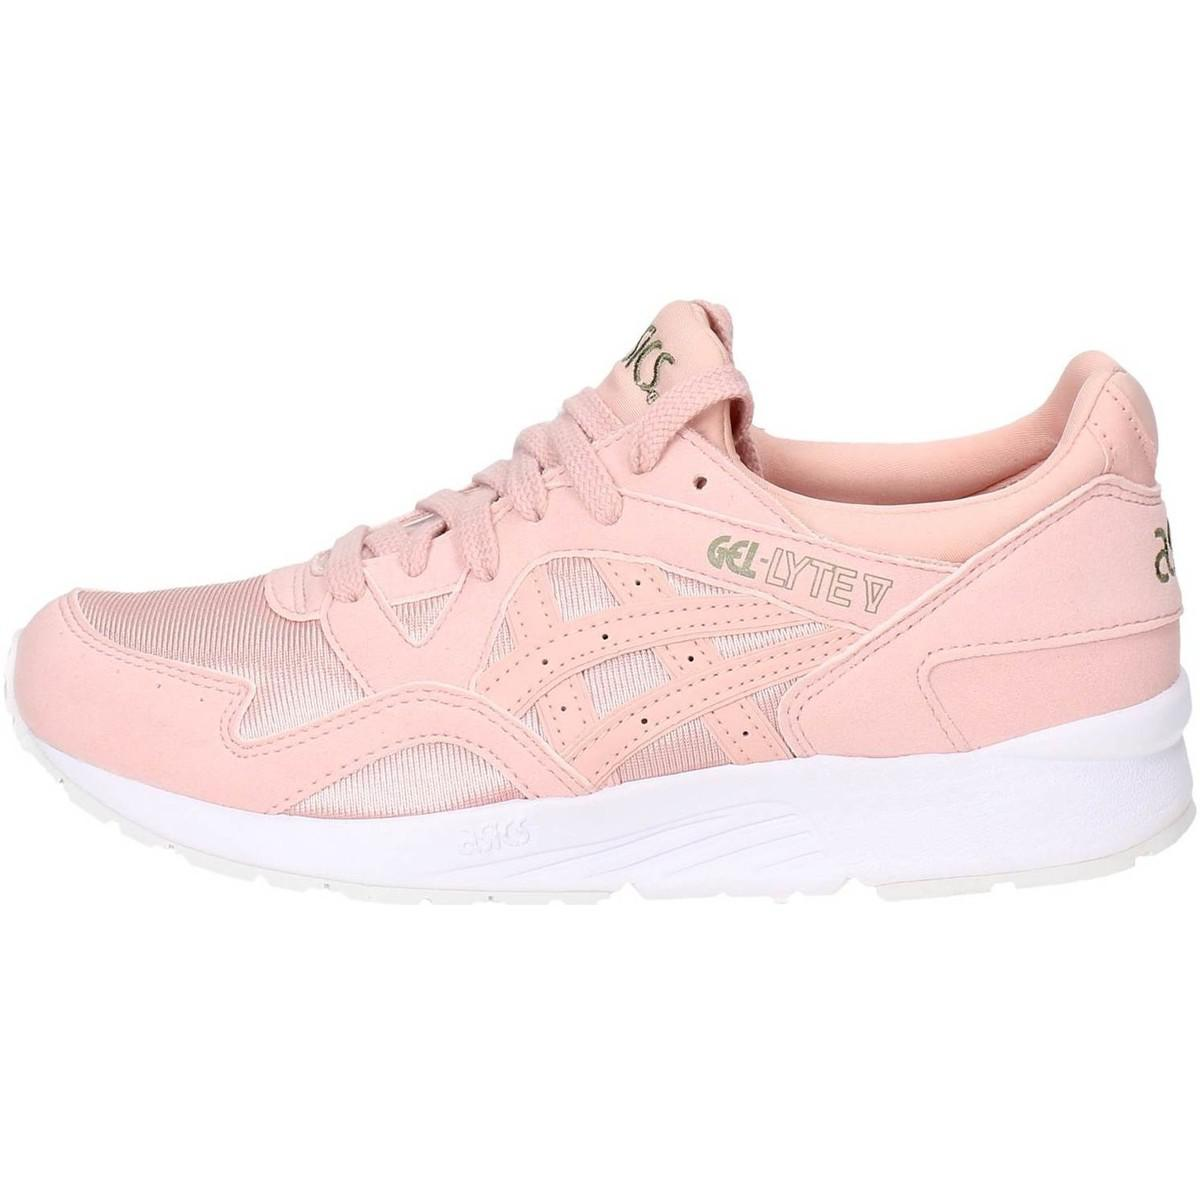 193473a70b49 Asics C541n..1717 Women s Shoes (trainers) In Pink in Pink - Lyst